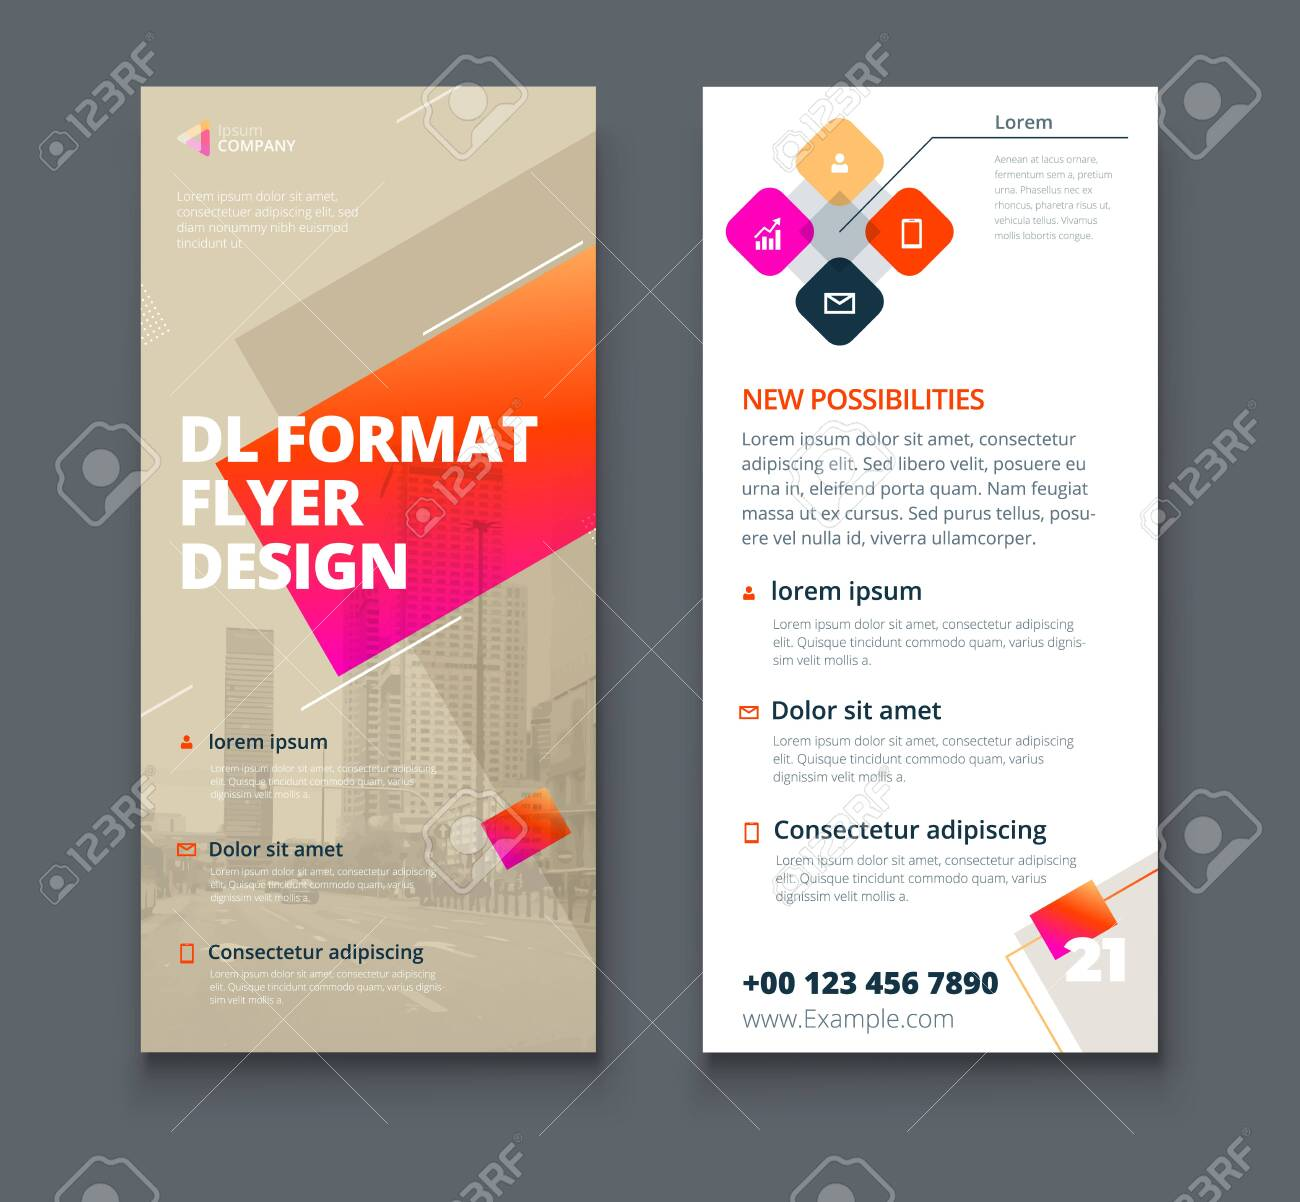 Biege DL Flyer design with square shapes, corporate business template for dl flyer. Creative concept flyer or banner layout. - 142458501